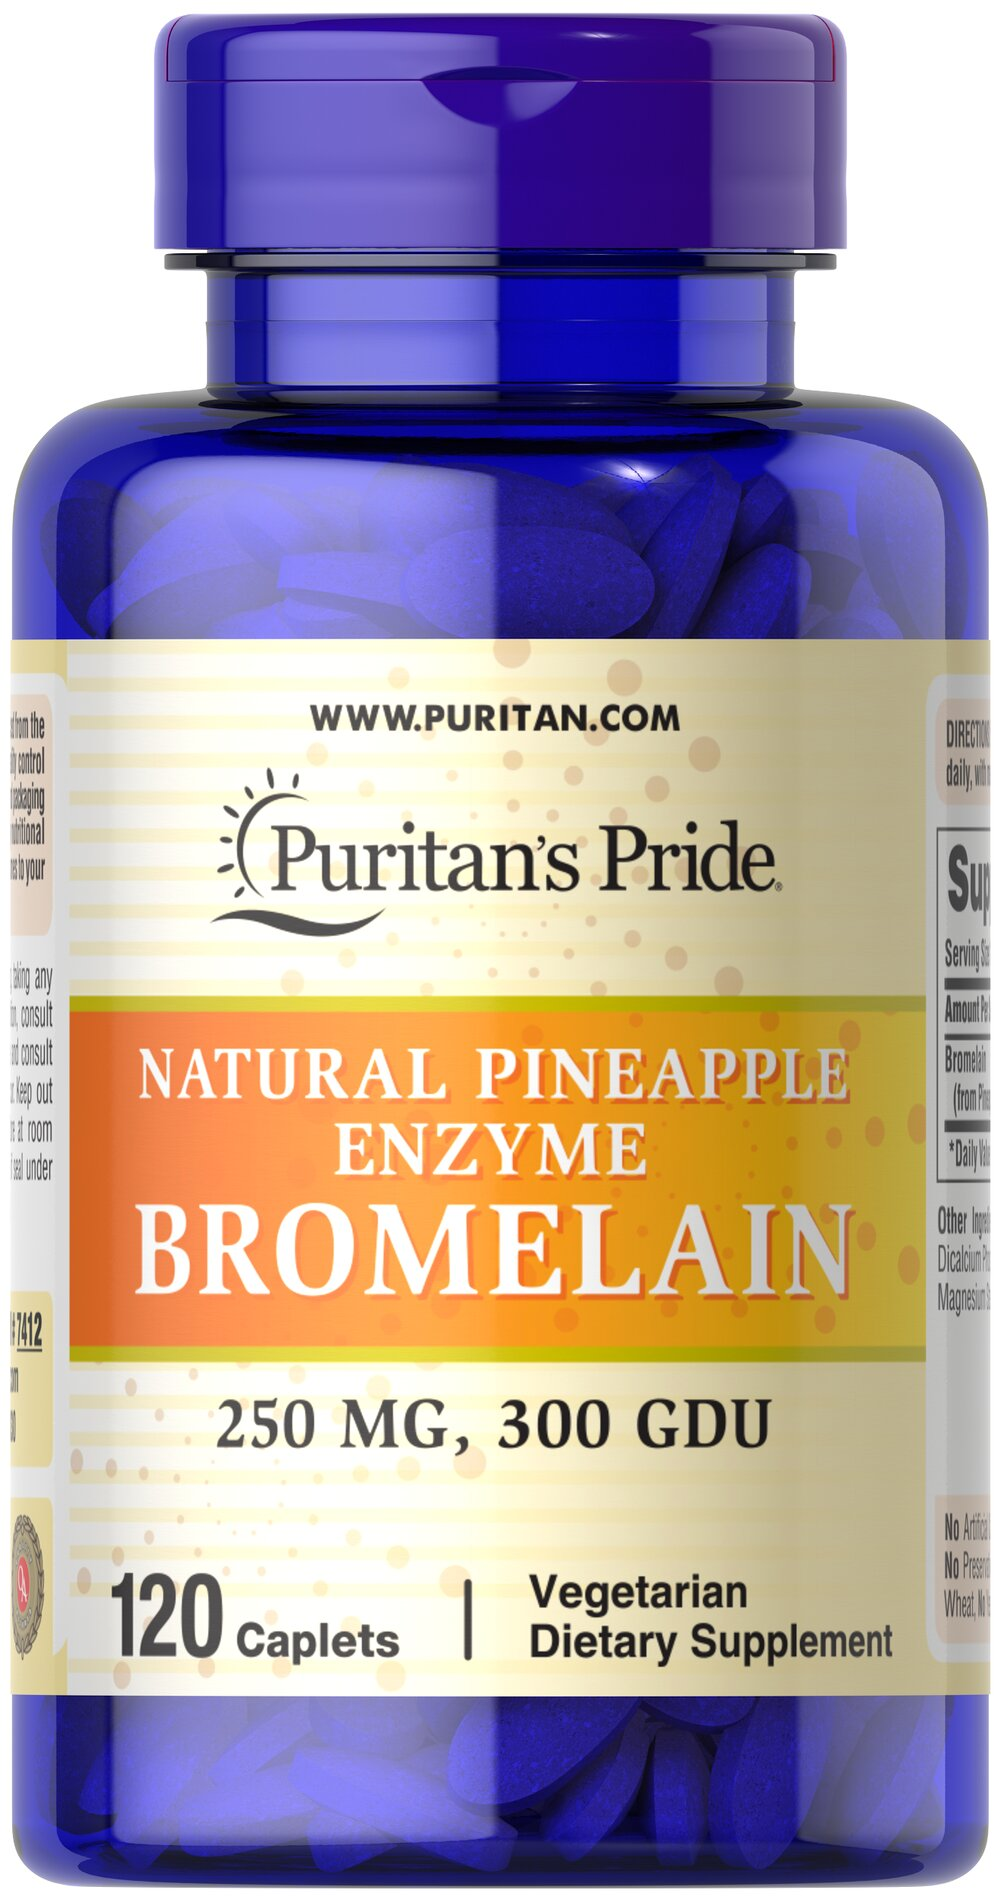 Bromelain 500 mg 300 GDU/gram <p>Derived from the stems of pineapple, Bromelain is a natural digestive enzyme.** </p><p>As a natural enzyme, Bromelain helps digest protein in the gastrointestinal tract.** </p><p>In general, enzymes break down the nutritional components of proteins, fats and carbohydrates, making these nutrients available for the body's energy needs, cell growth and other vital functions.**</p> 120 Caplets 500 mg $25.99